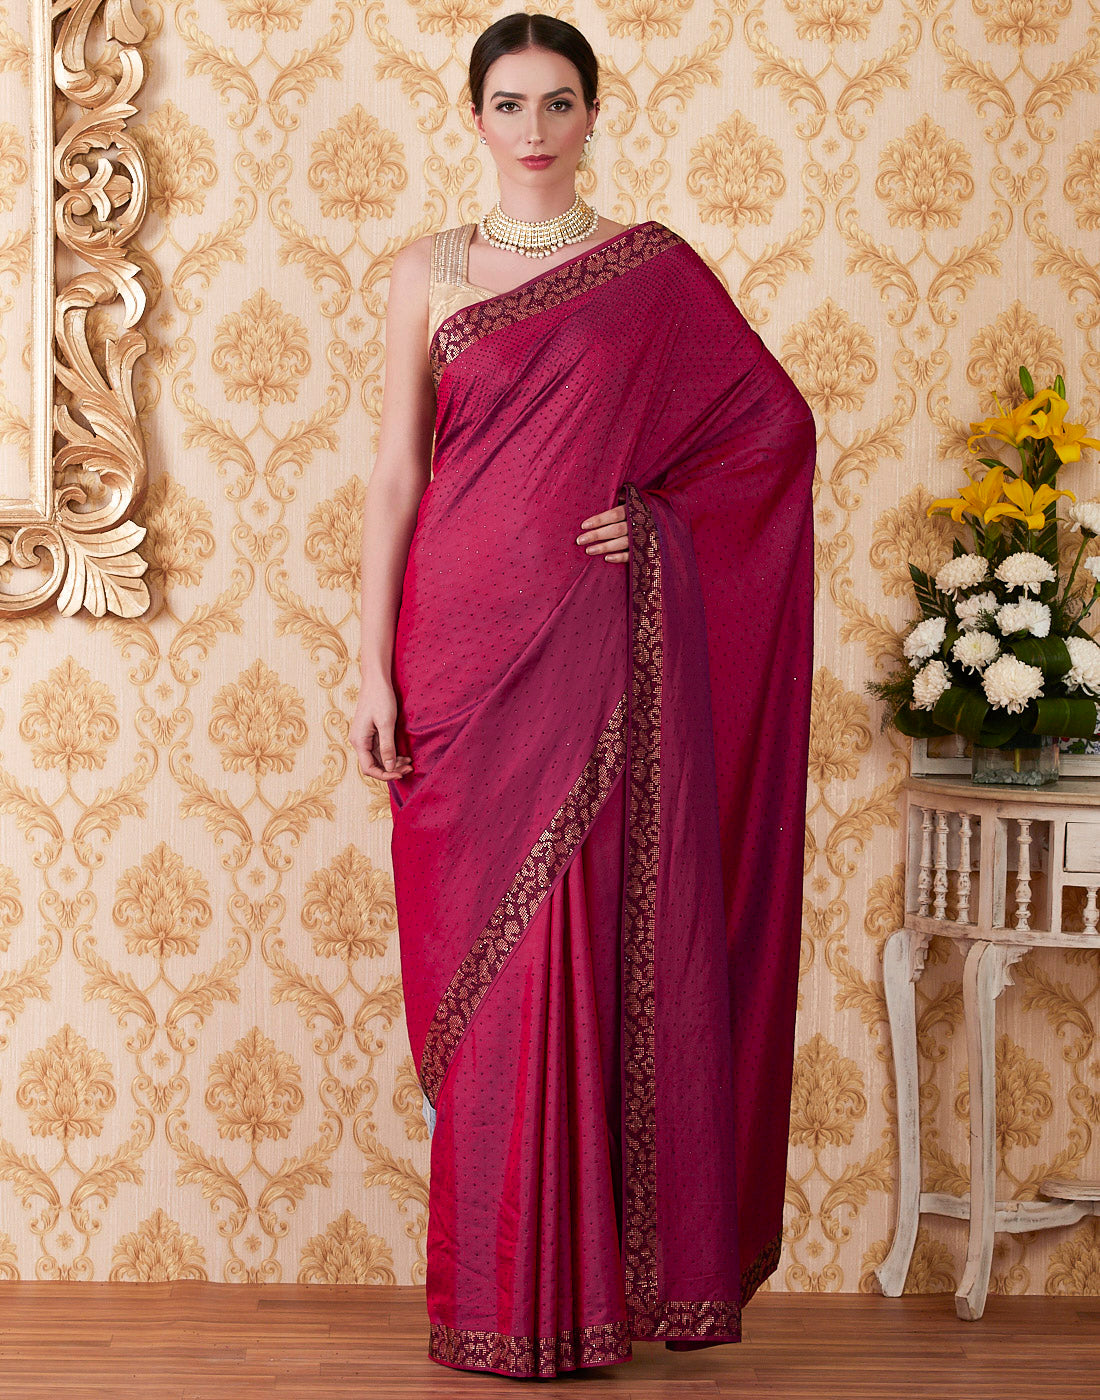 Magenta Art Handloom Dupion Embroidered Saree